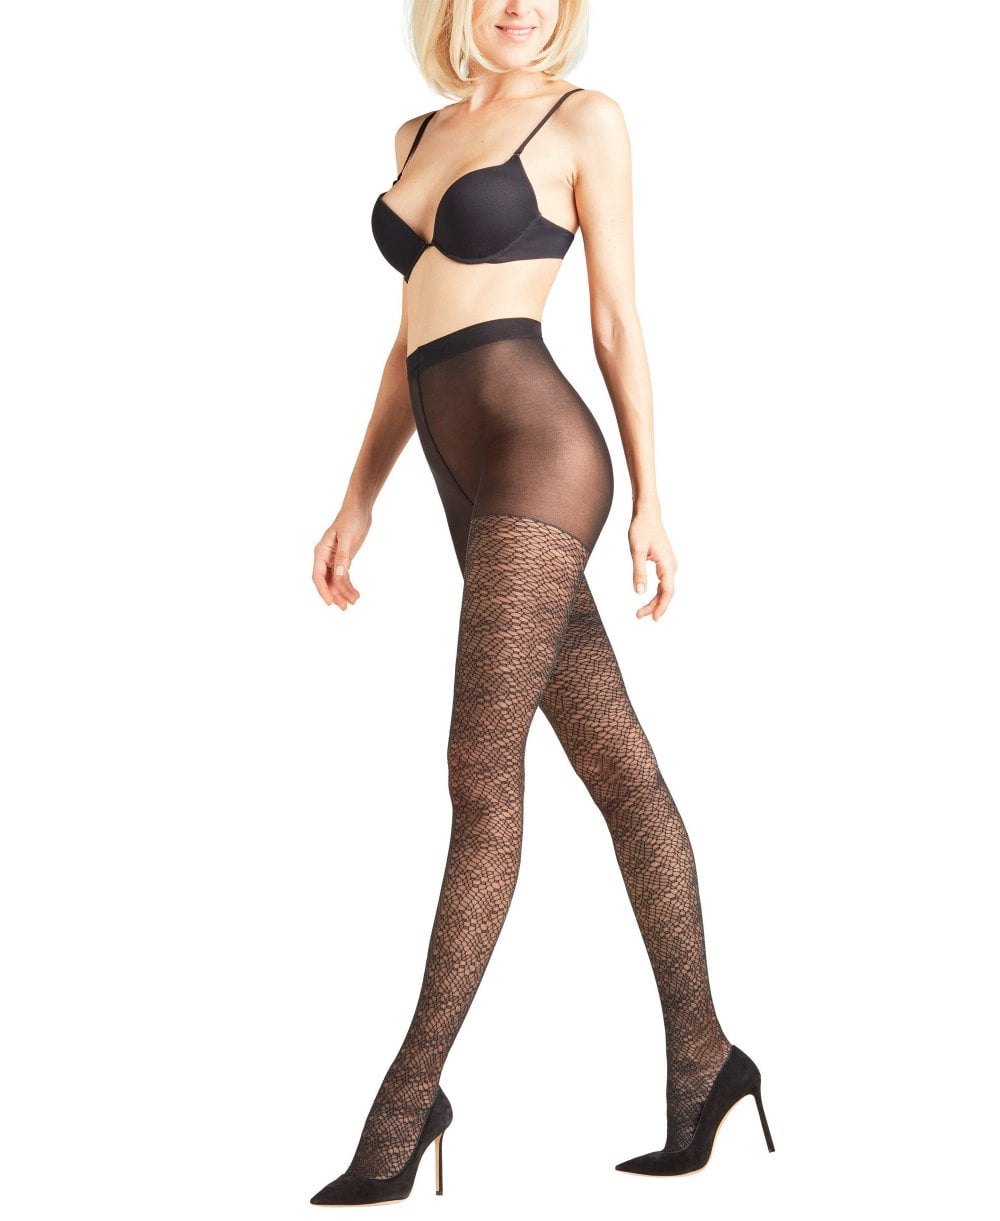 c7bcc14e20805 Falke Wild Luxe Tights - Tights from luxury-legs.com UK